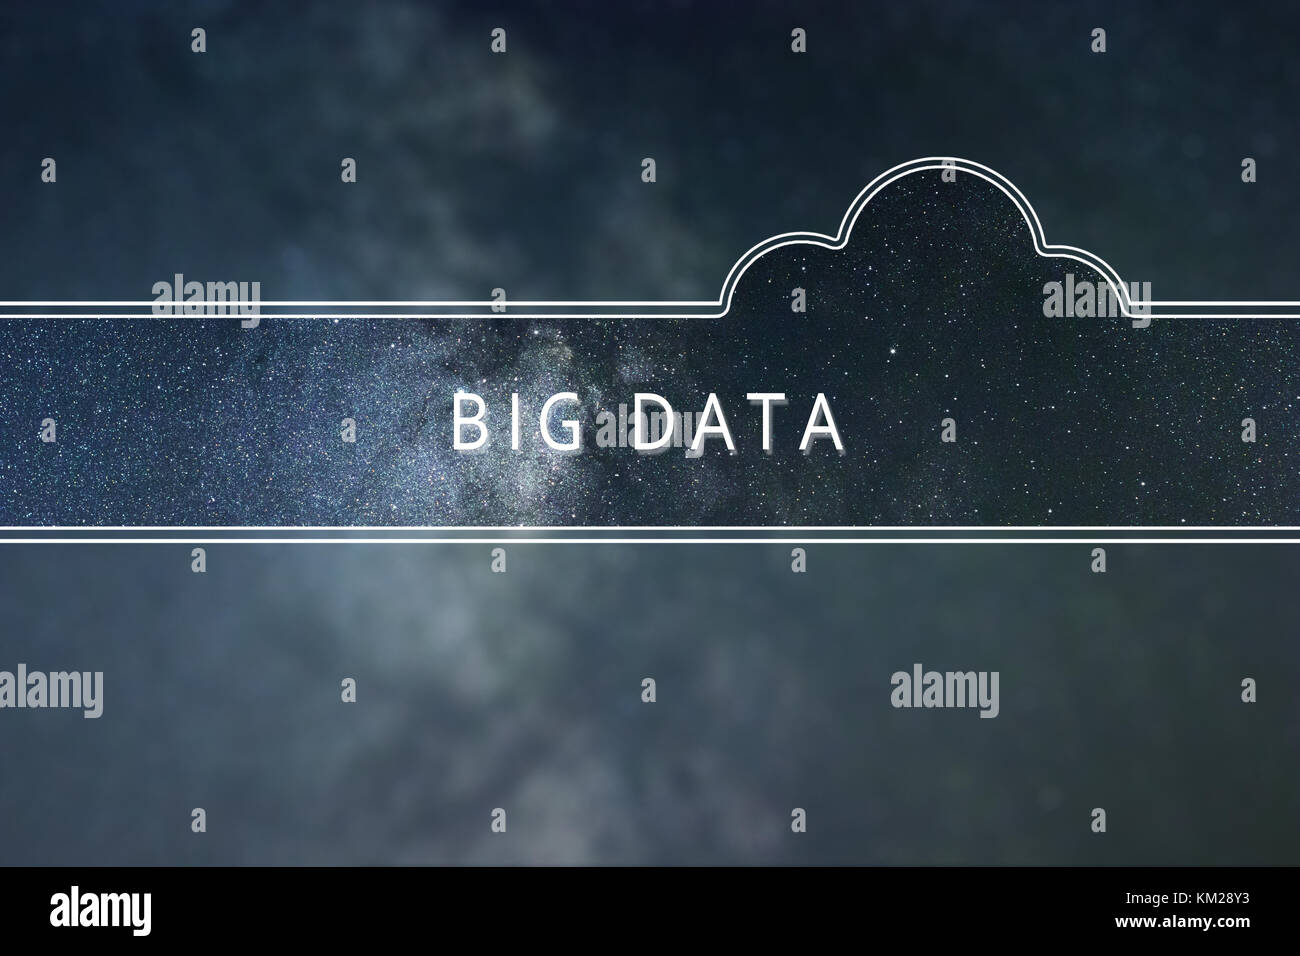 BIG DATA word cloud Concept. Space background. - Stock Image